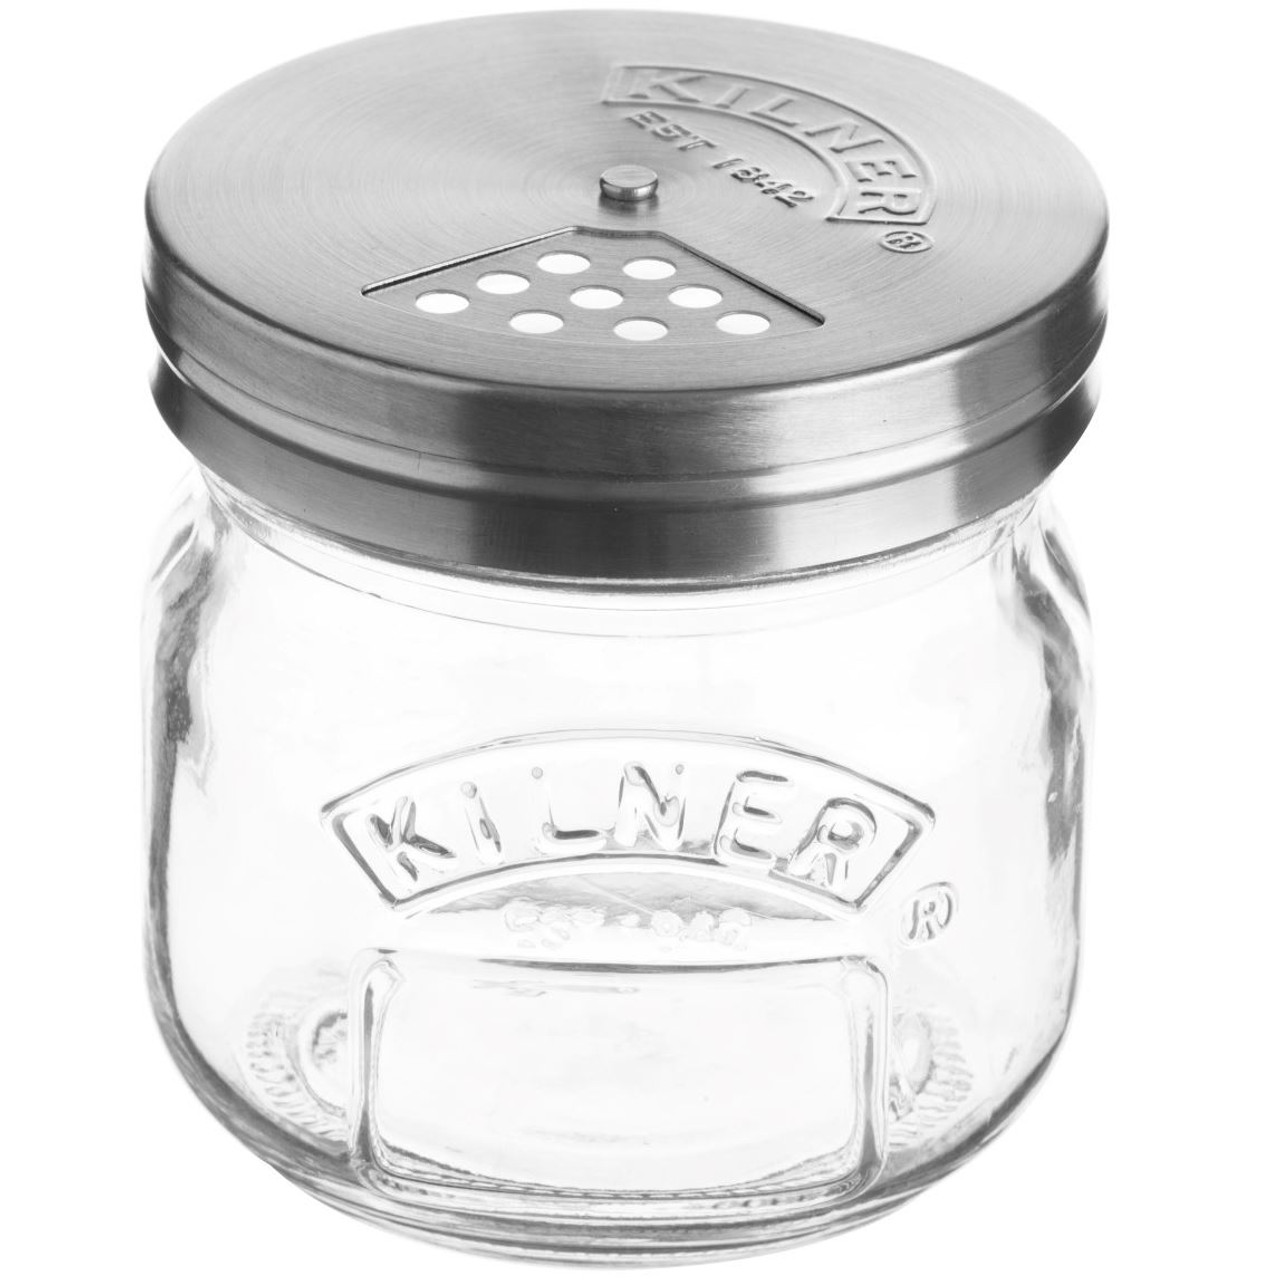 Kilner Jar With Shaker Lid 250ml